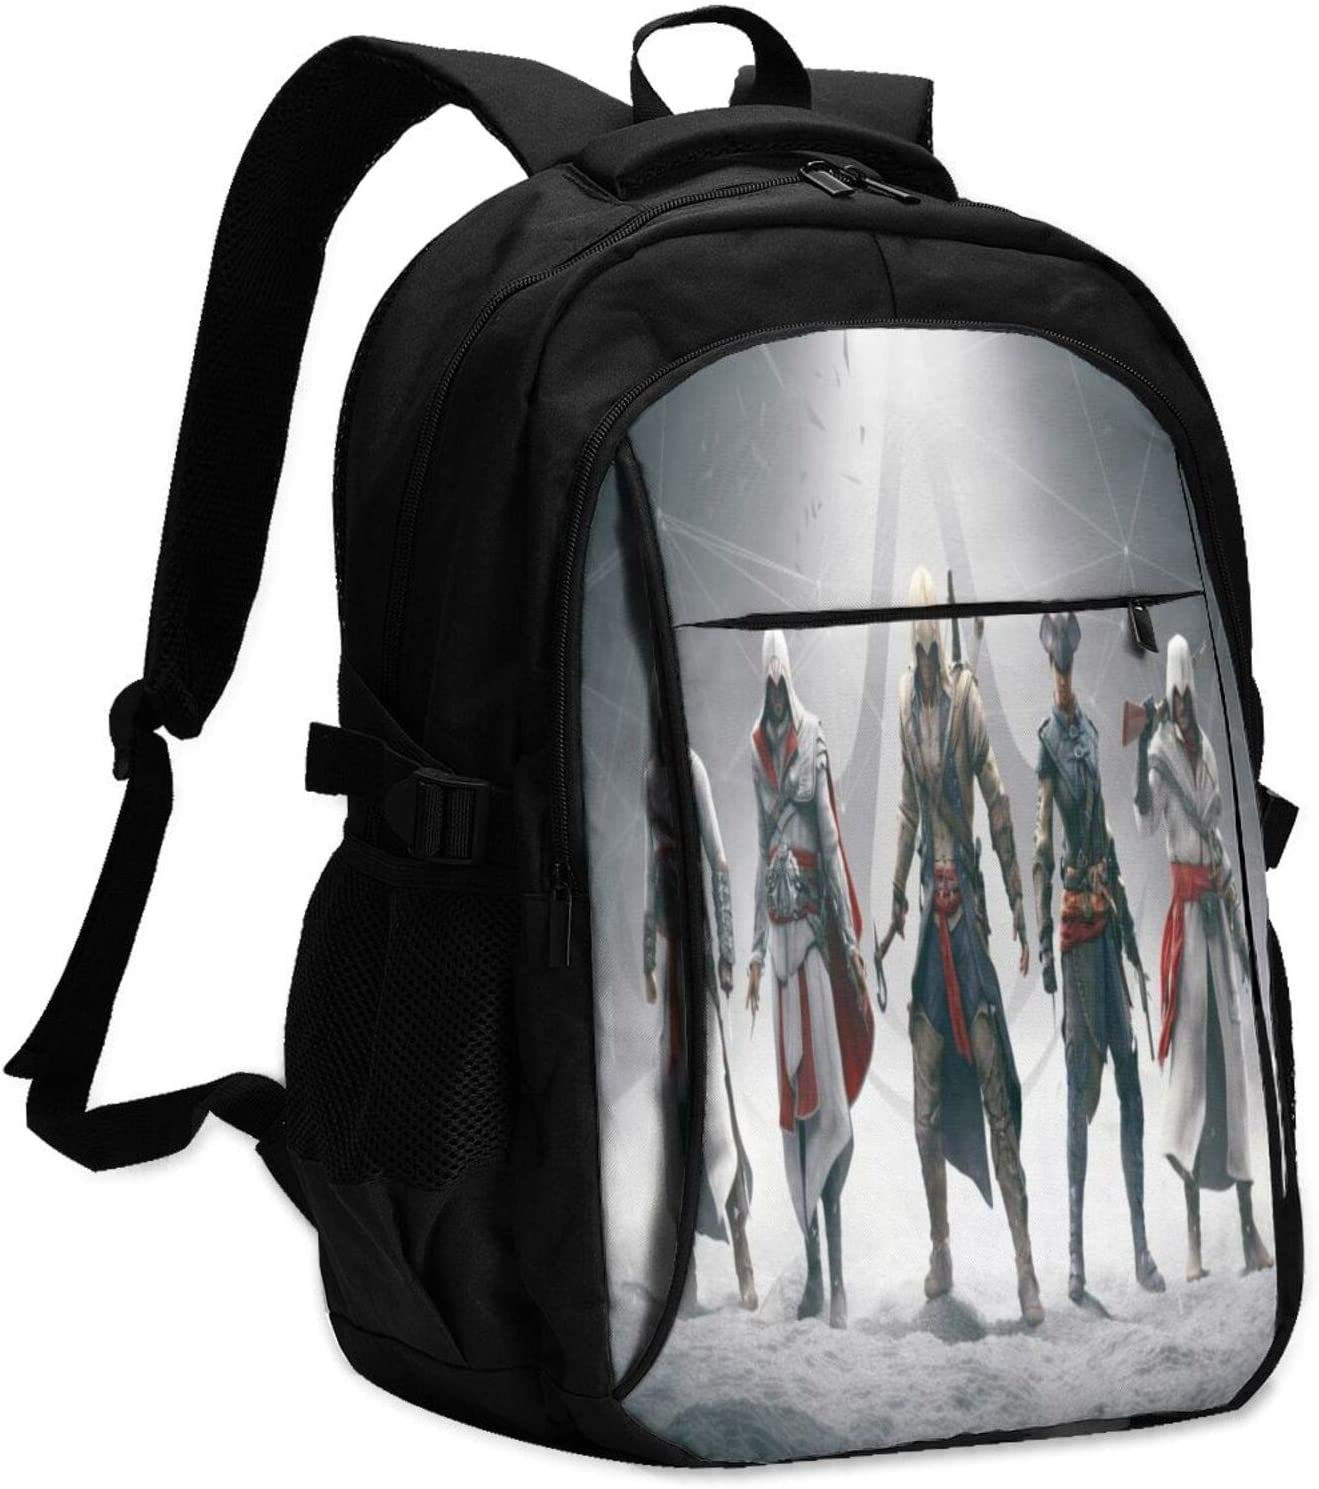 Game Theme Combat Handsome Assassin's Creed Laptop Backpack Anti Theft Water Resistant Durable Computer Bag USB Charging Port Fits 15.6 Inch Laptop and Notebook College School Business Travel